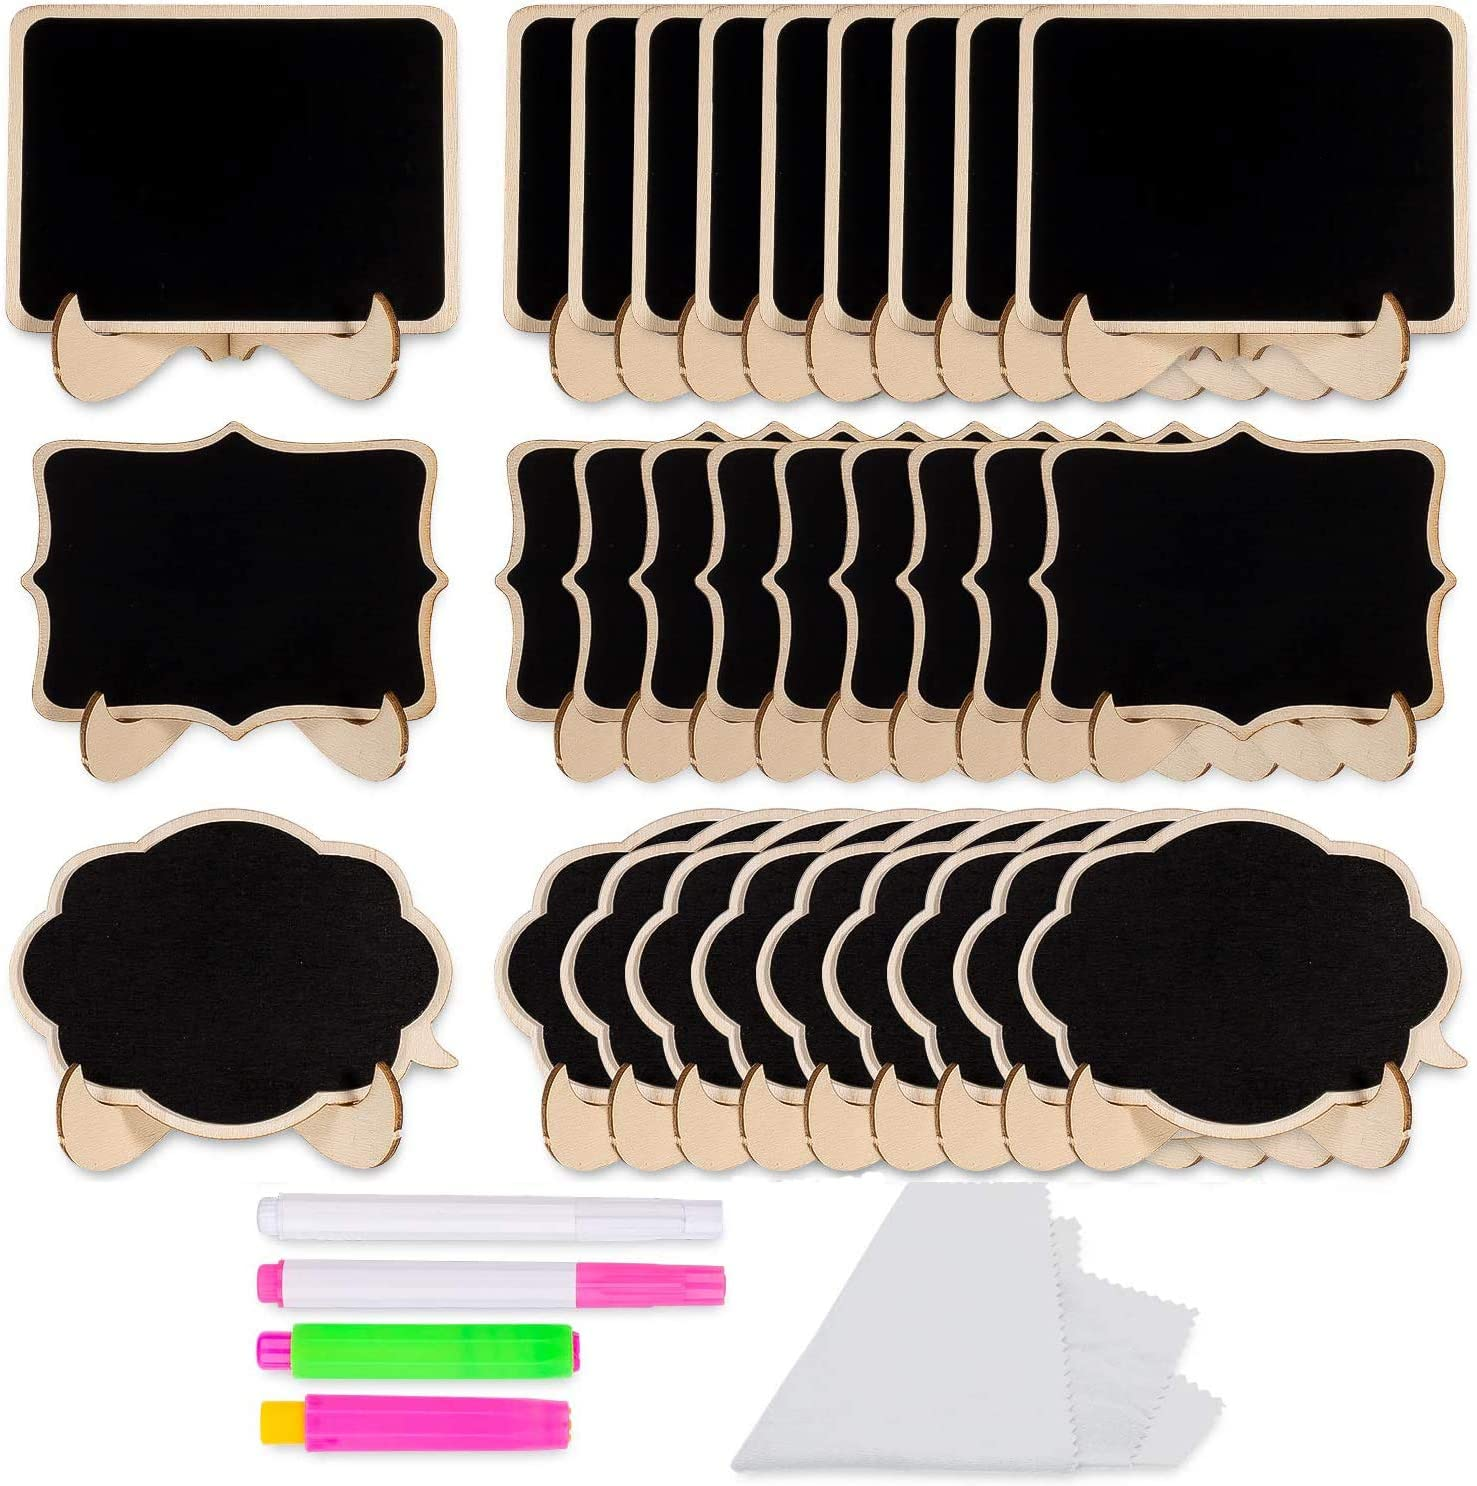 Whaline Las Vegas Mall Mini Chalkboards with Stand 30 Small Rectangle Luxury goods Pack Bla